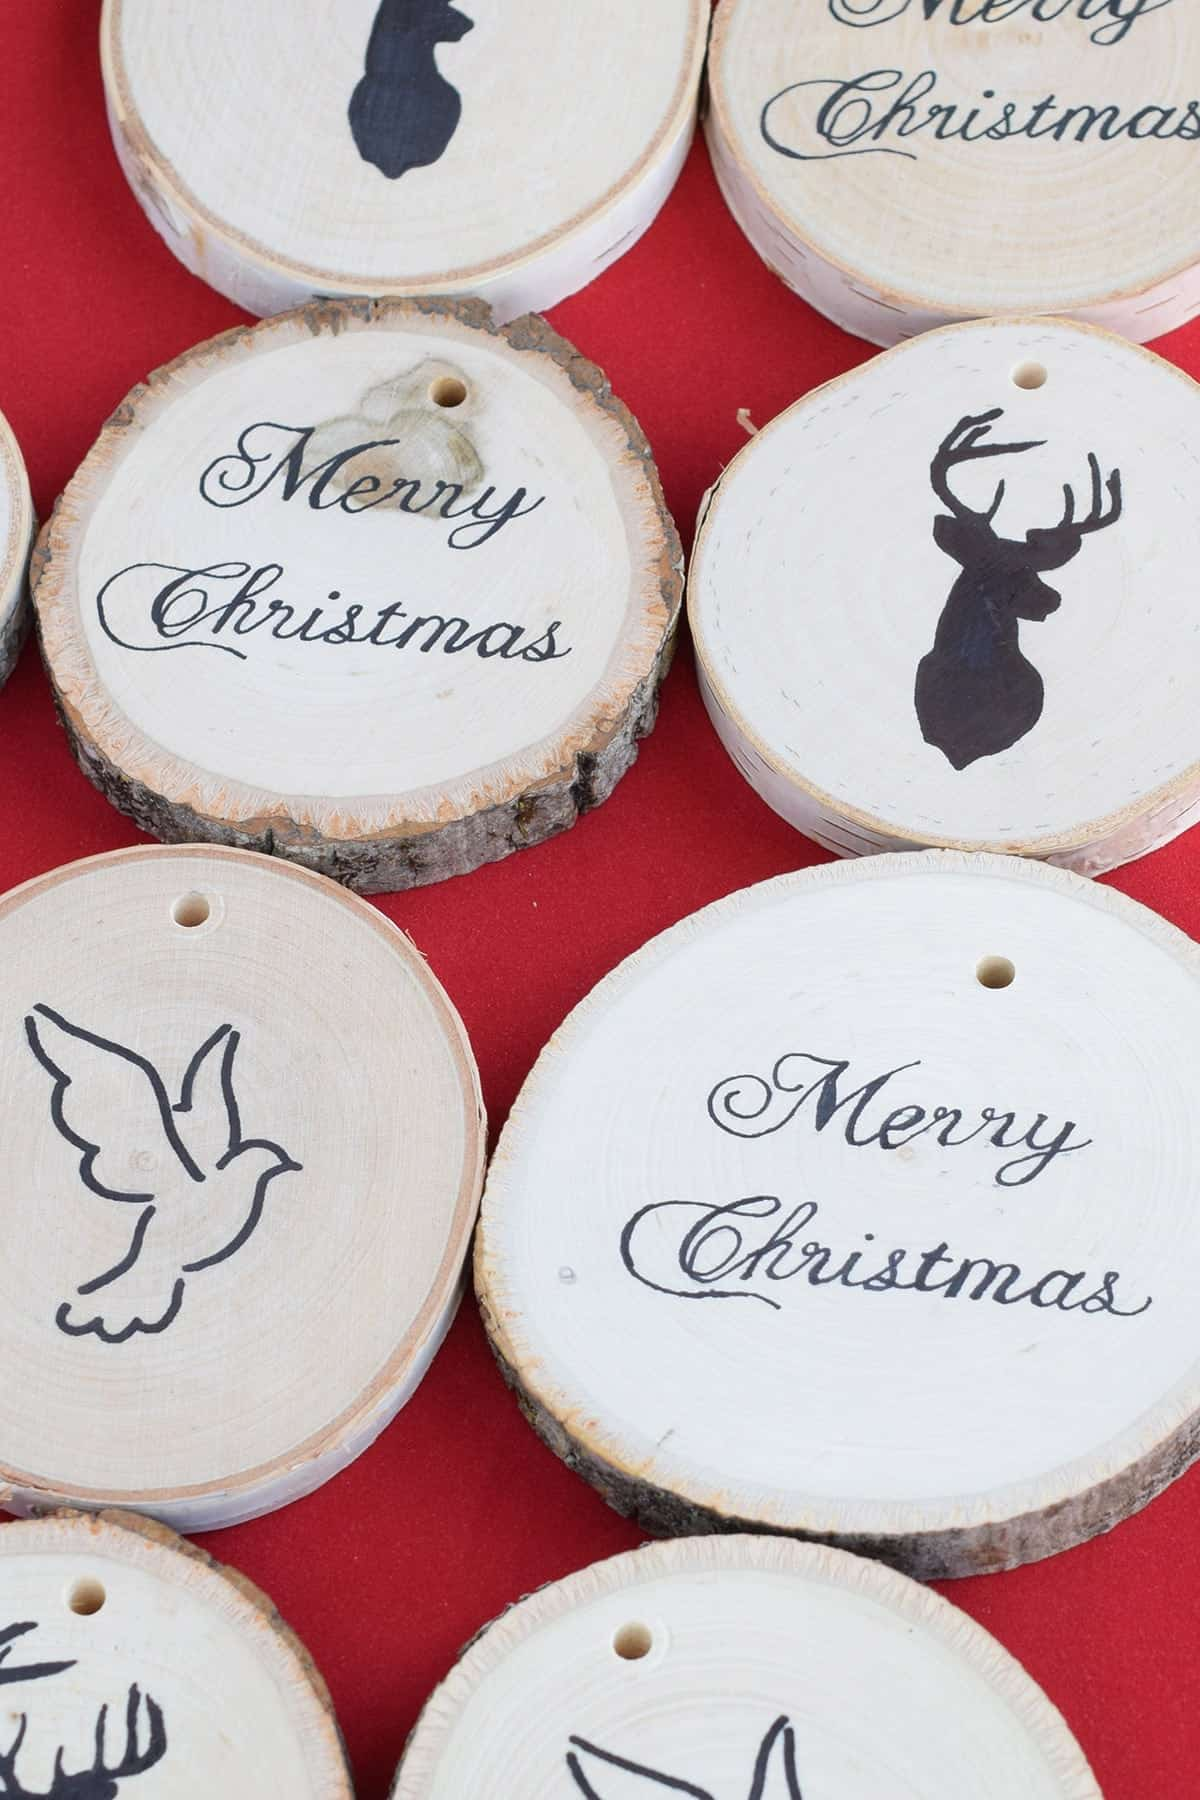 Two rows of wood slice ornaments with Christmas themed image transfers on red surface.